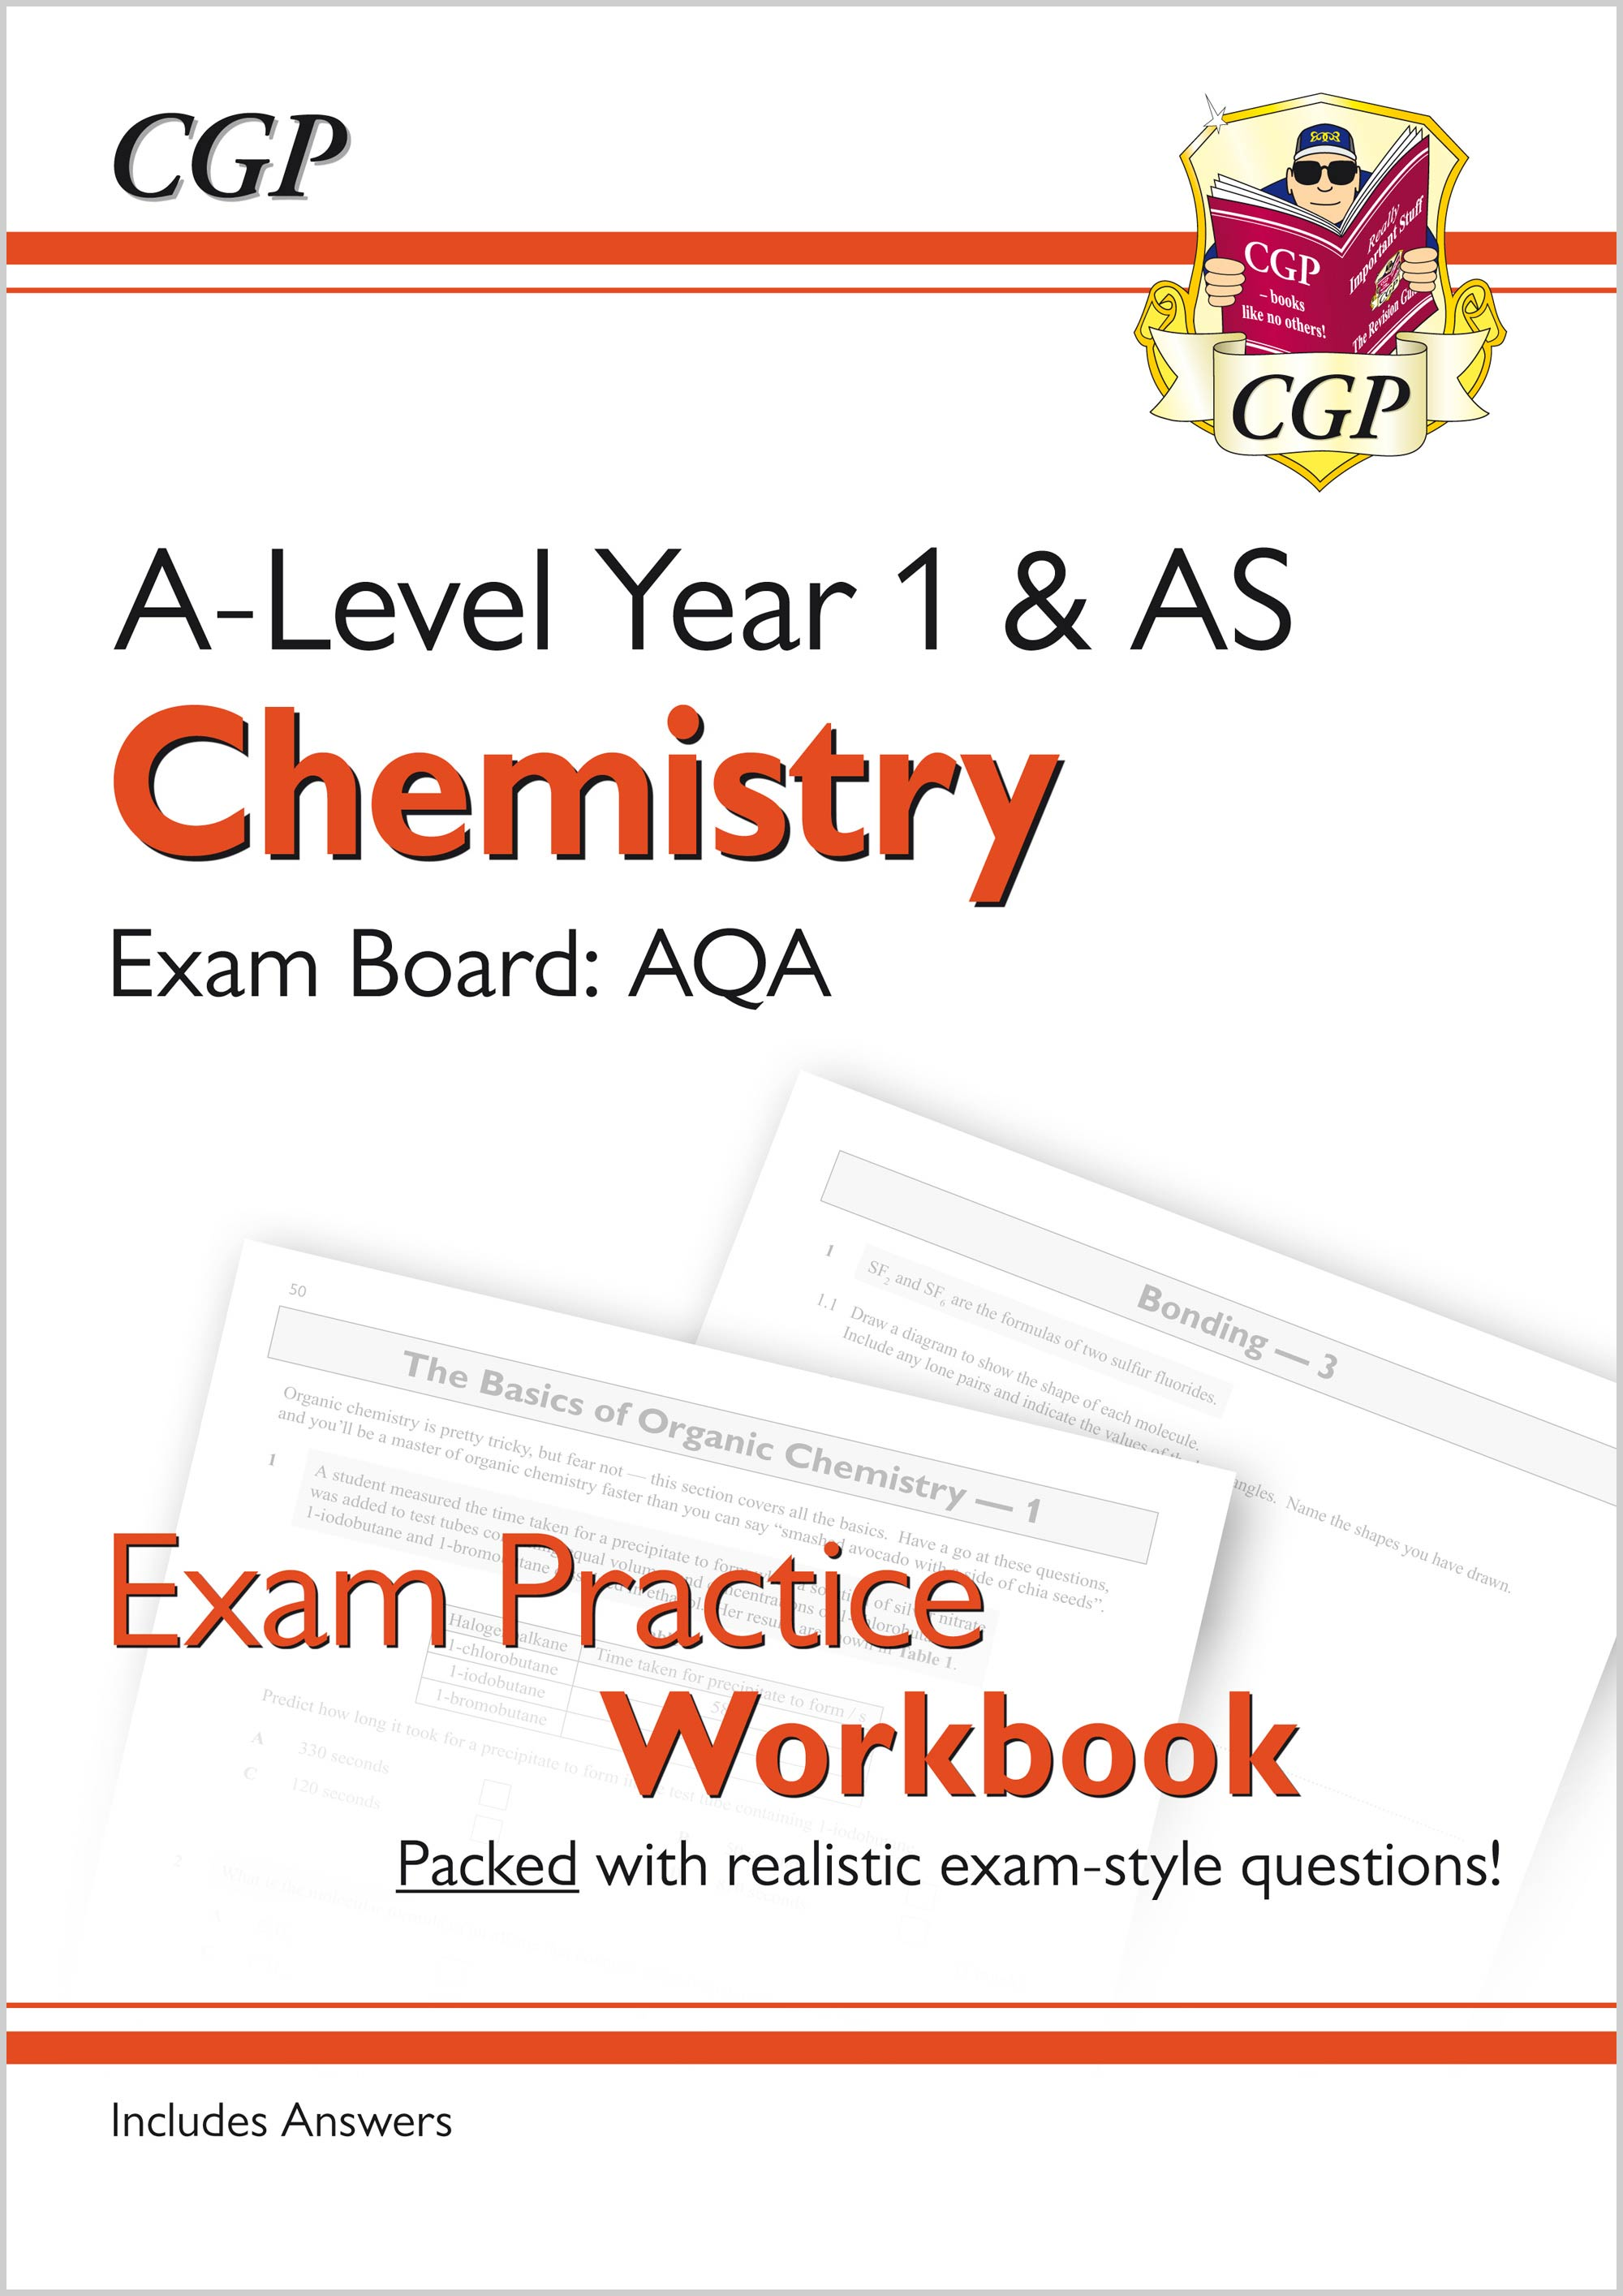 CAQ51 - A-Level Chemistry: AQA Year 1 & AS Exam Practice Workbook - includes Answers